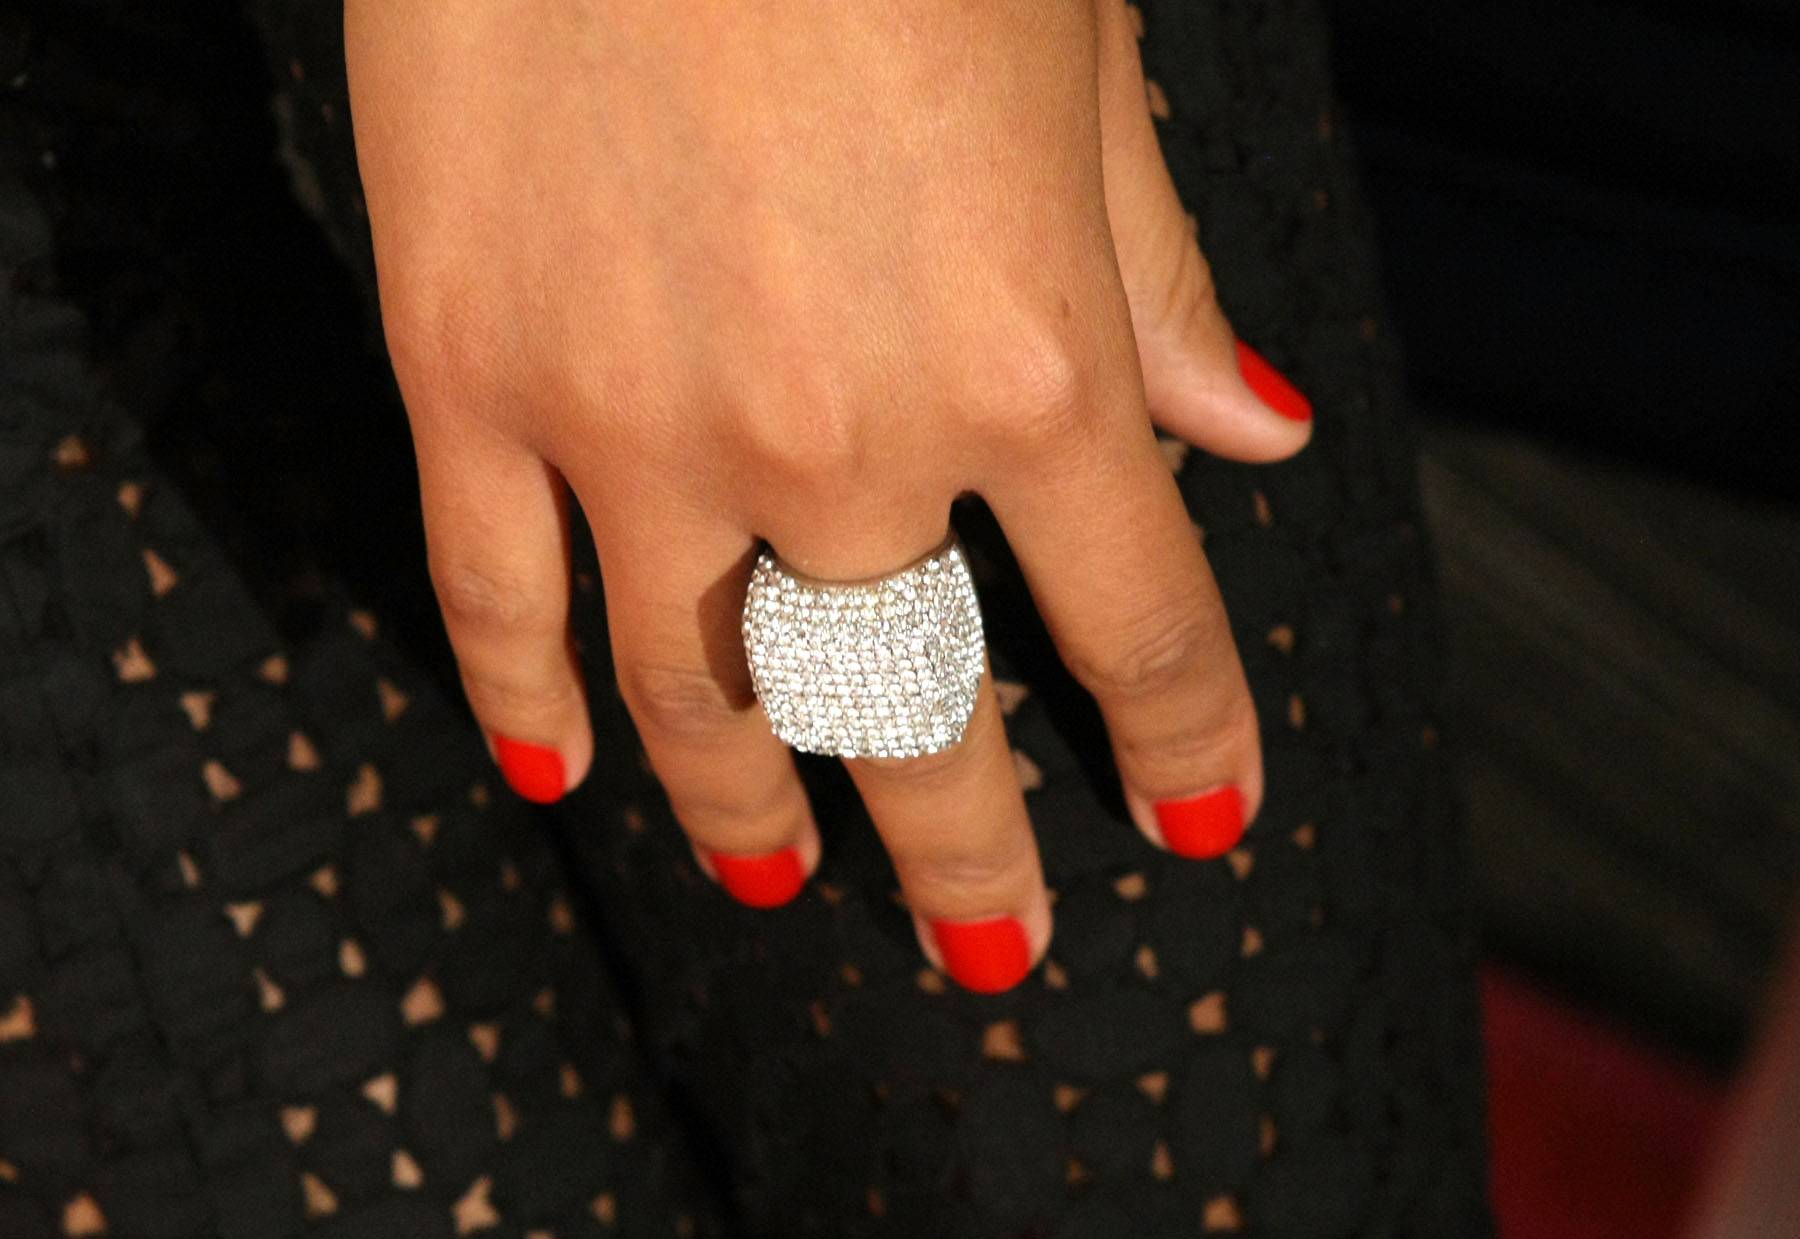 Blinders - You'll need to put on the blinders while looking at Angela Simmons' ring. (Photo: Bennett Raglin/BET/Getty Images for BET)